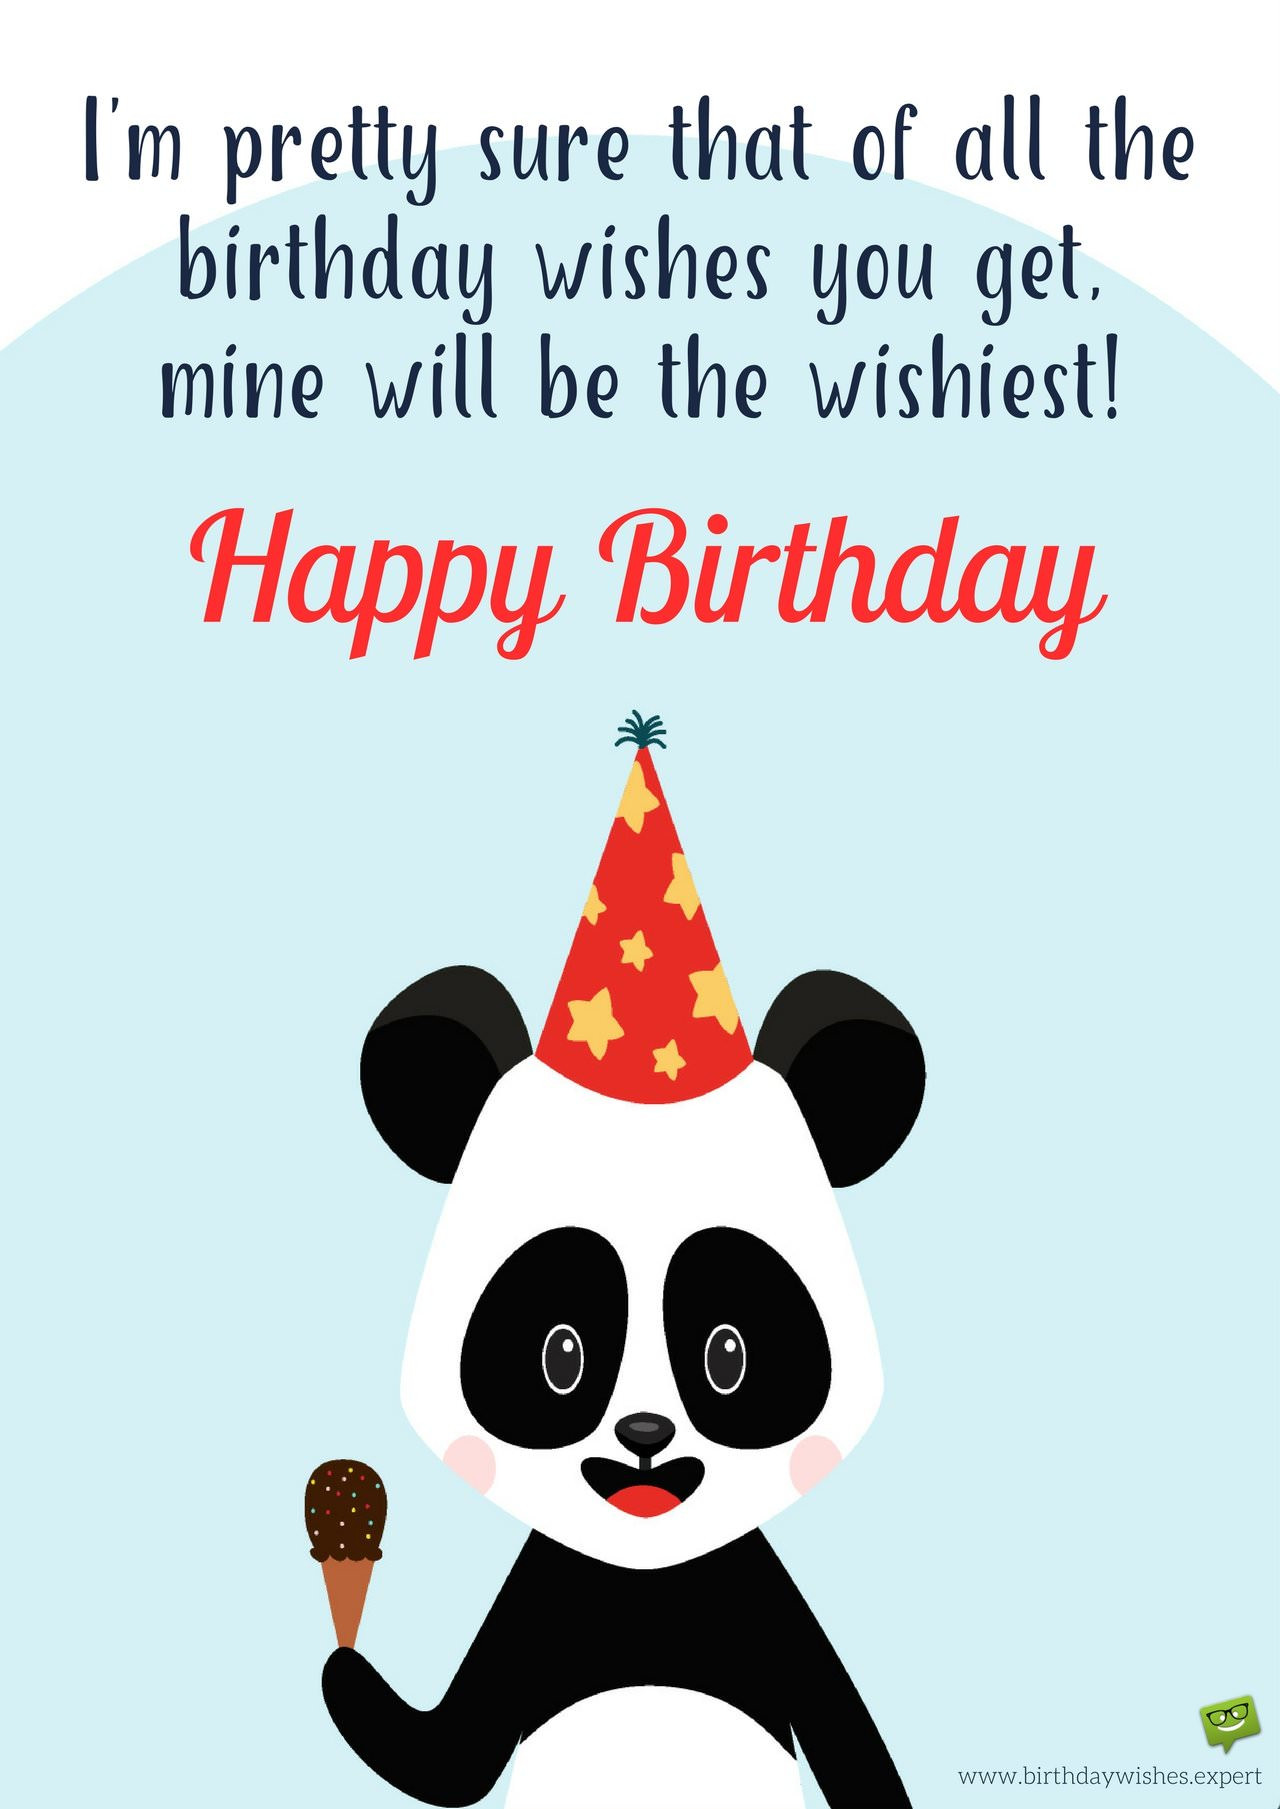 Best ideas about Happy Birthday Funny Wishes . Save or Pin The Funniest Wishes to Make your Wife Smile on her Birthday Now.